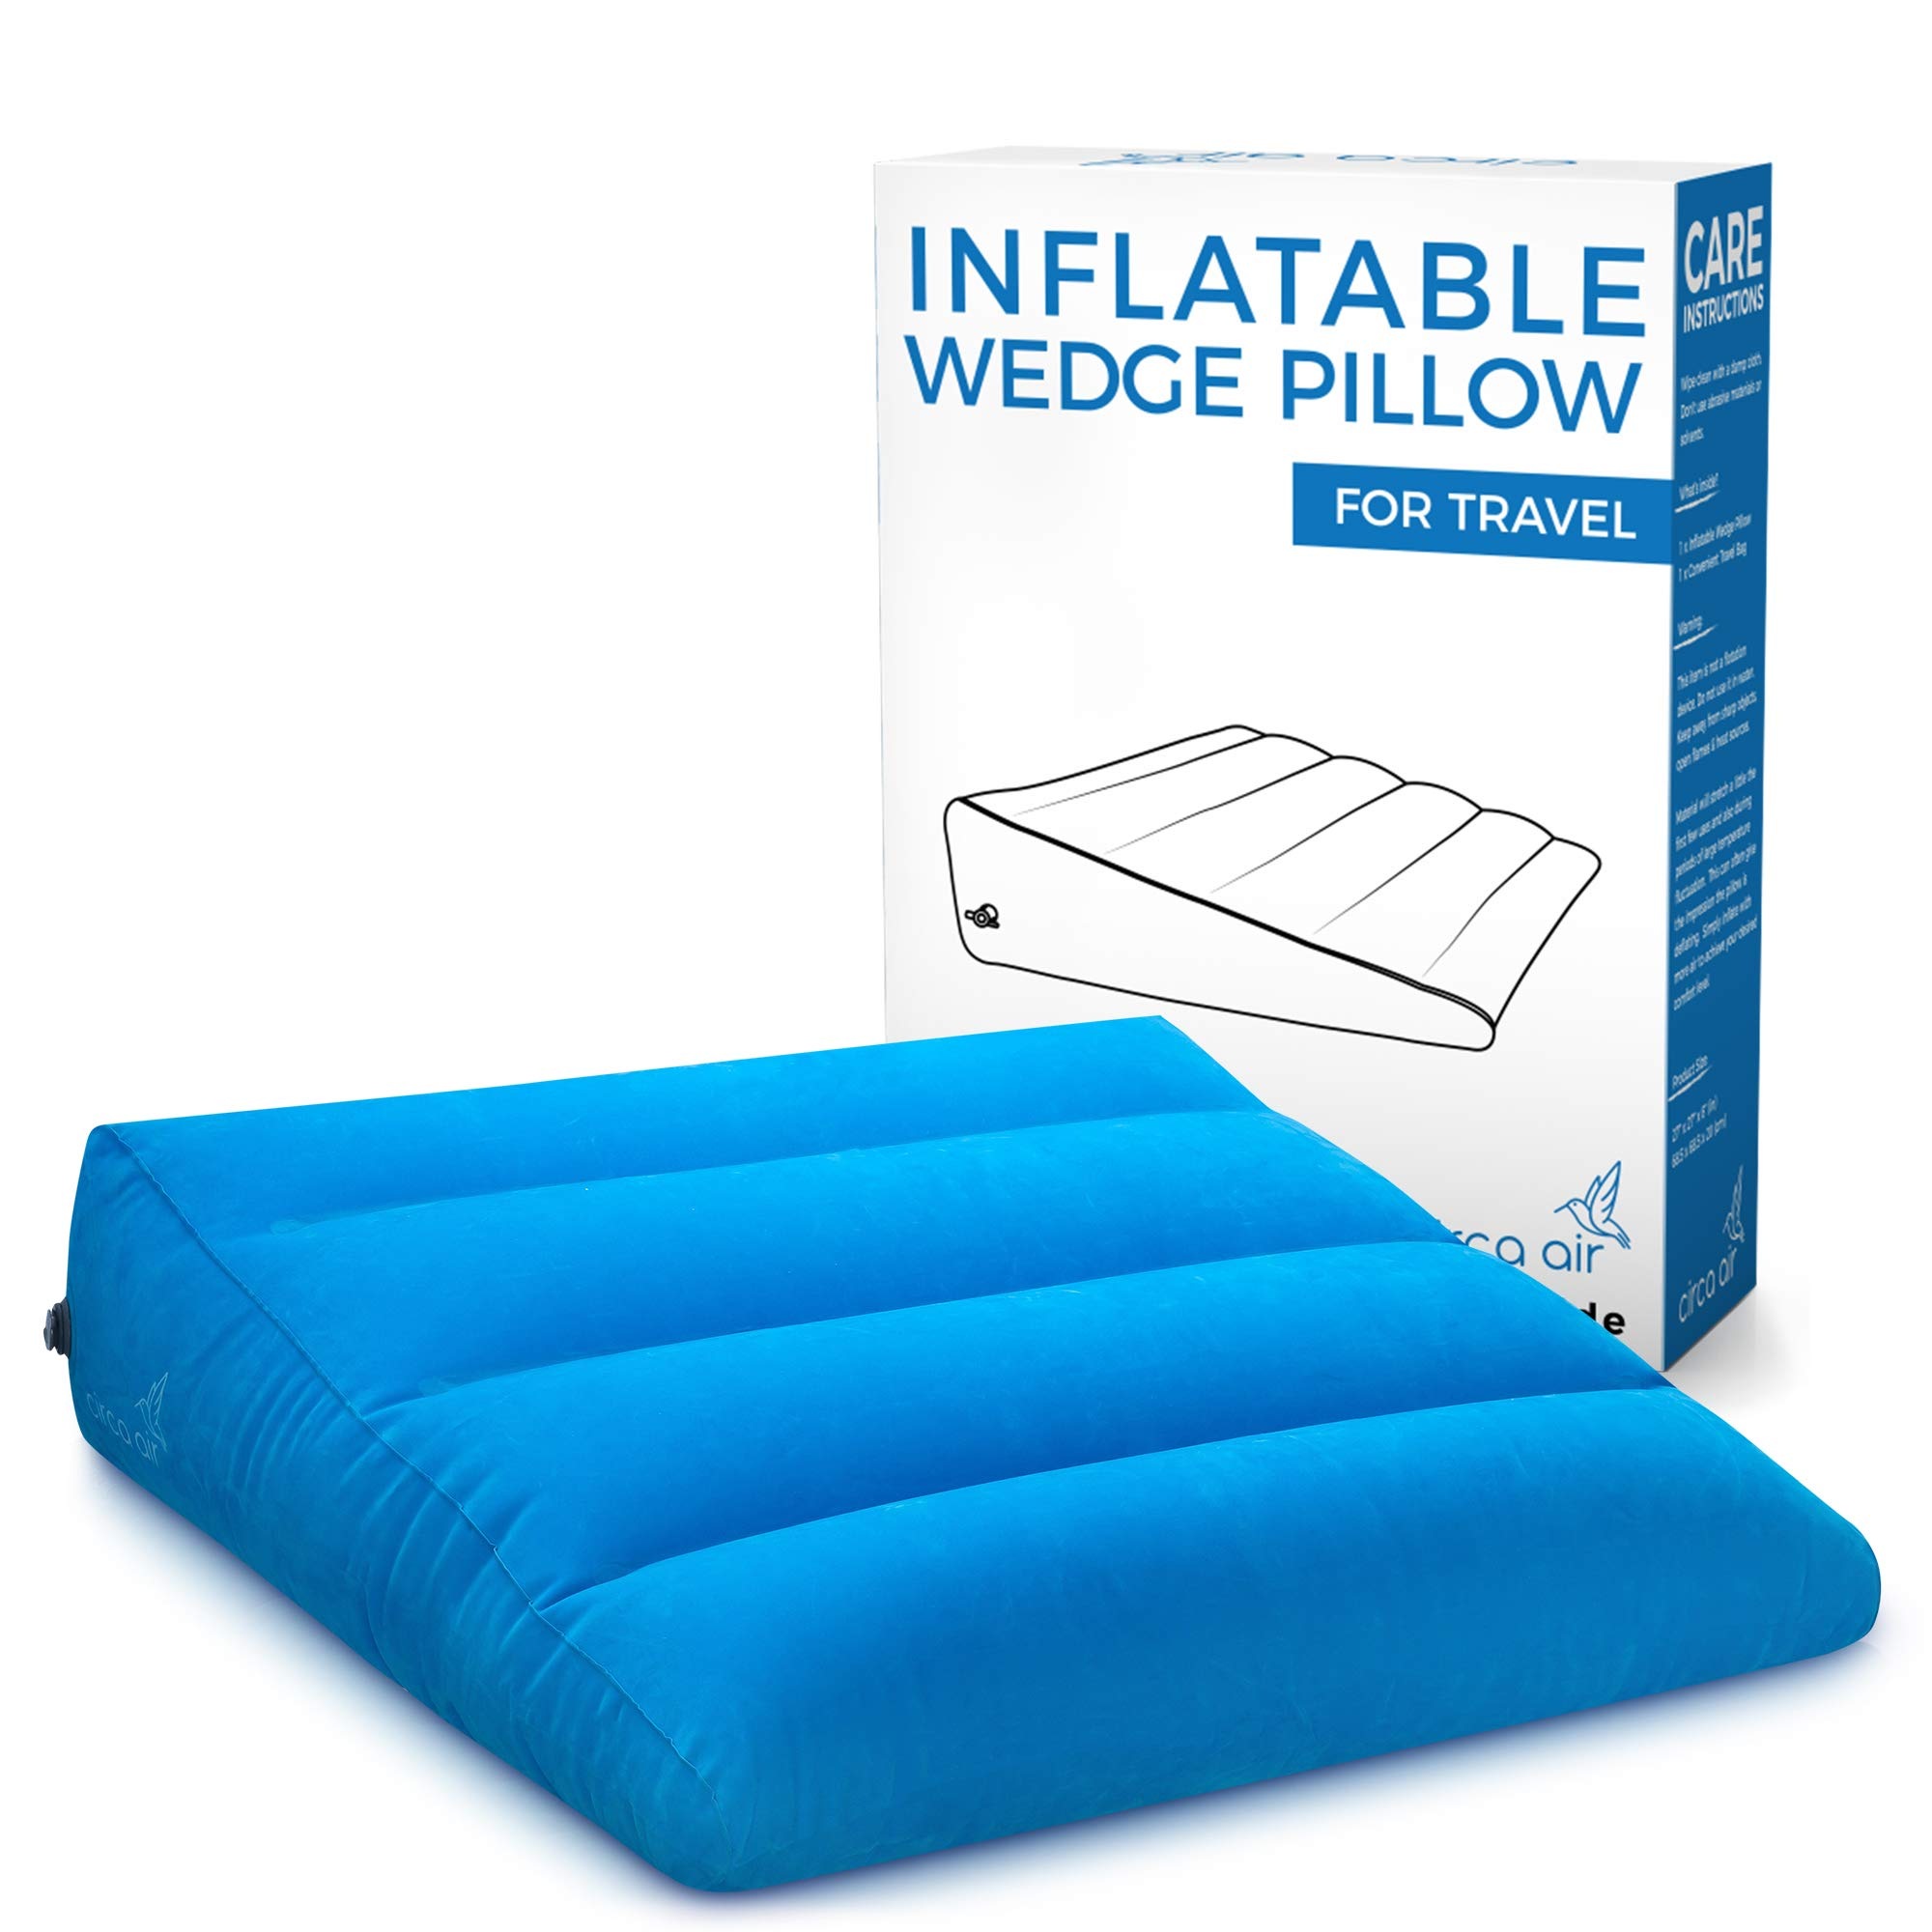 Circa Air Inflatable Wedge Pillow - For Travel, Acid Reflux, Sleeping Support. Travel Bed Wedge Pillow Inflates/Deflates Easily with Quick Valve. Large 27 x 27 x 8 (in) Portable, Lightweight & Compact by Circa Air